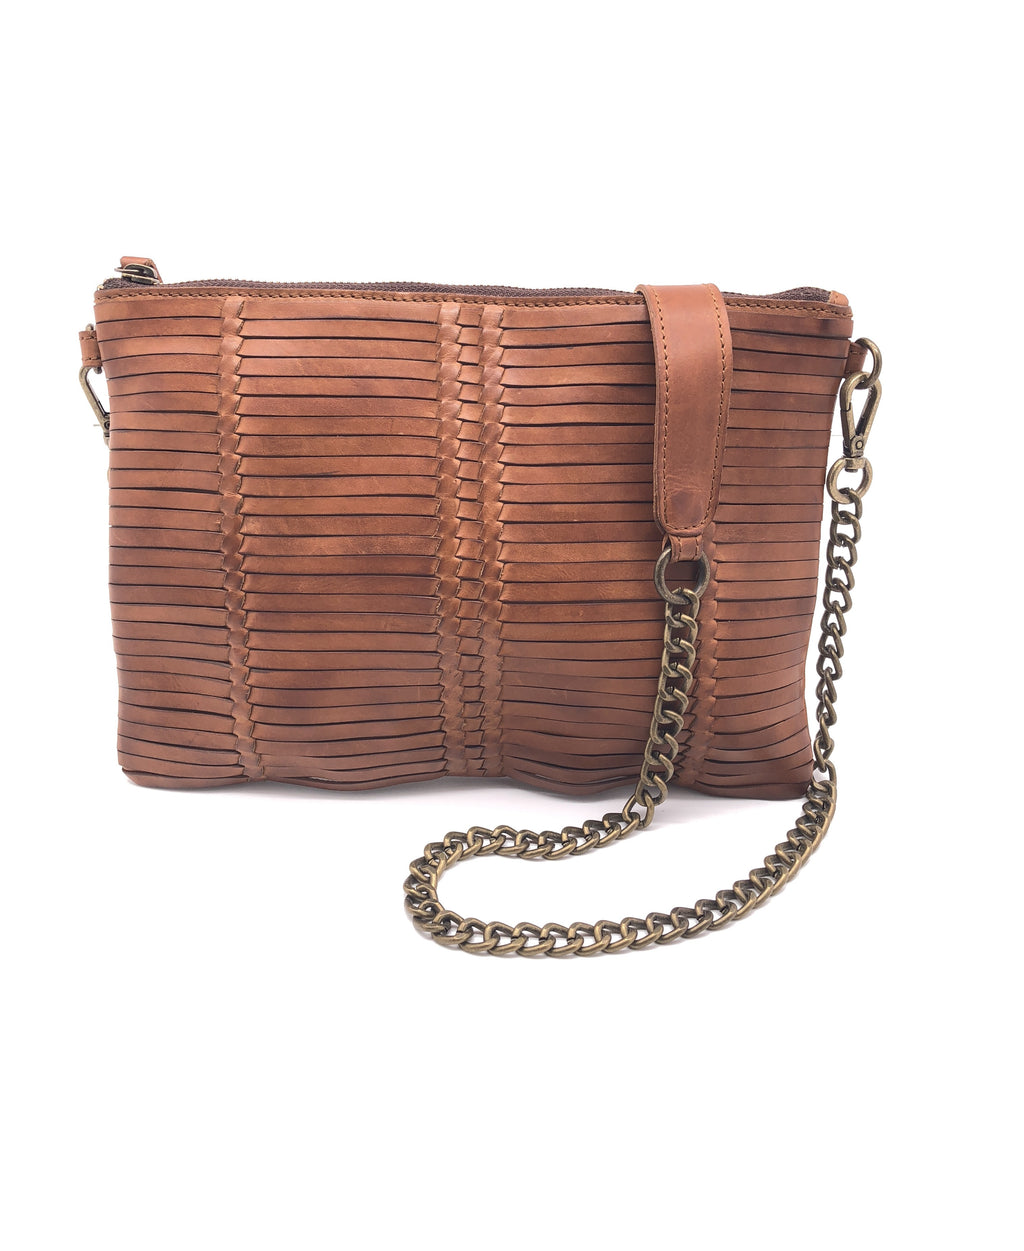 YAN NEO WEAVED LEATHER TAN CLUTCH BAG